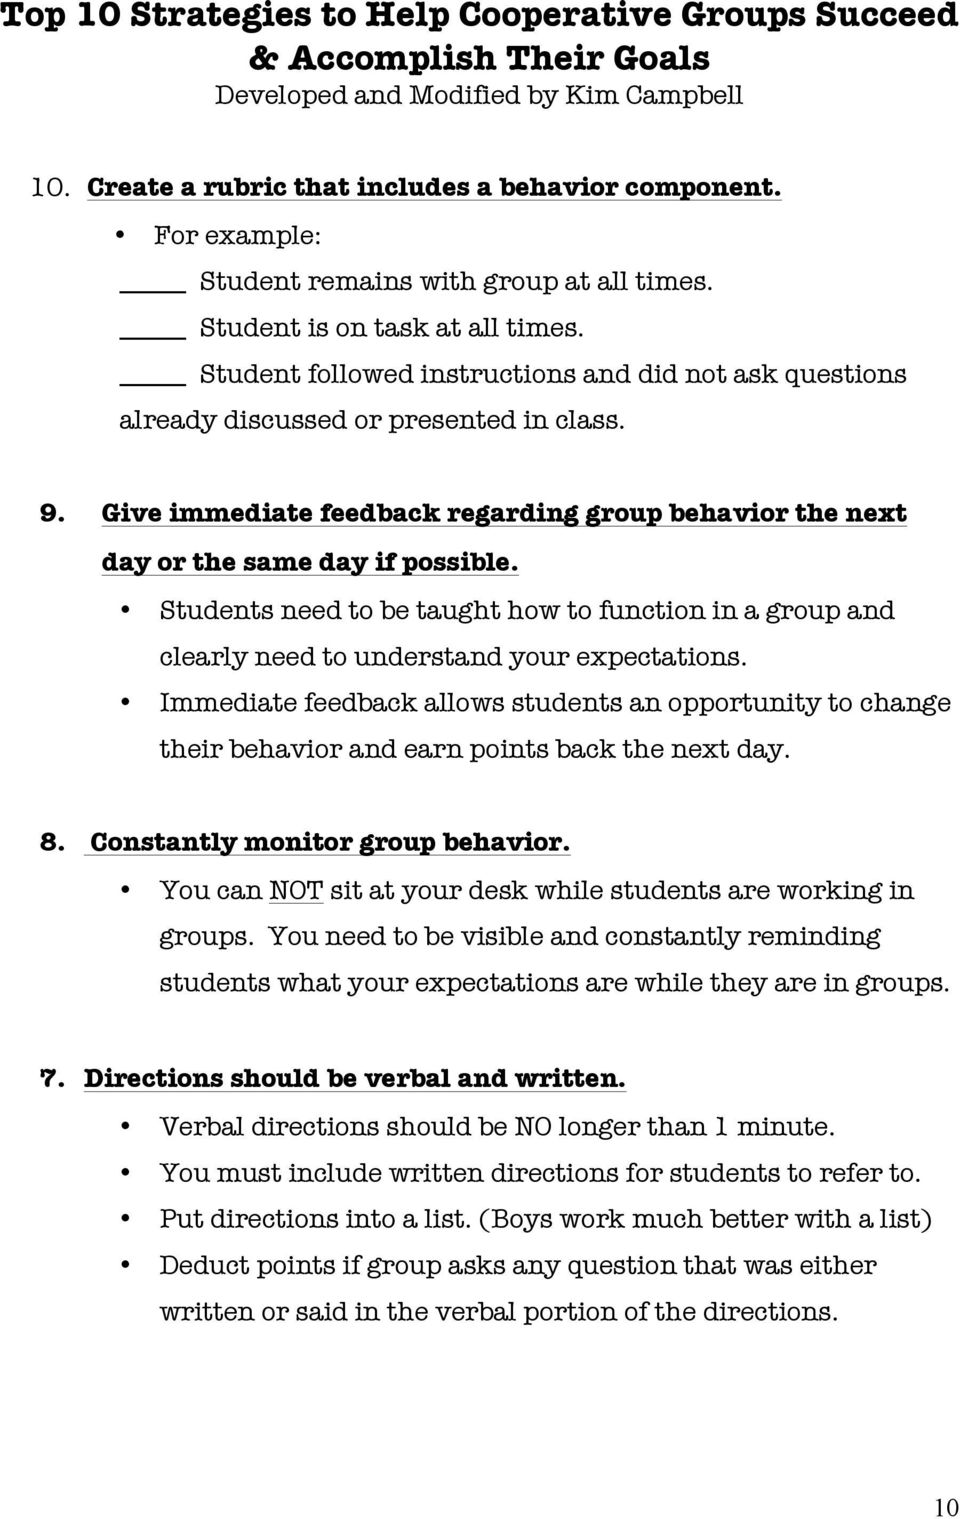 Give immediate feedback regarding group behavior the next day or the same day if possible. Students need to be taught how to function in a group and clearly need to understand your expectations.